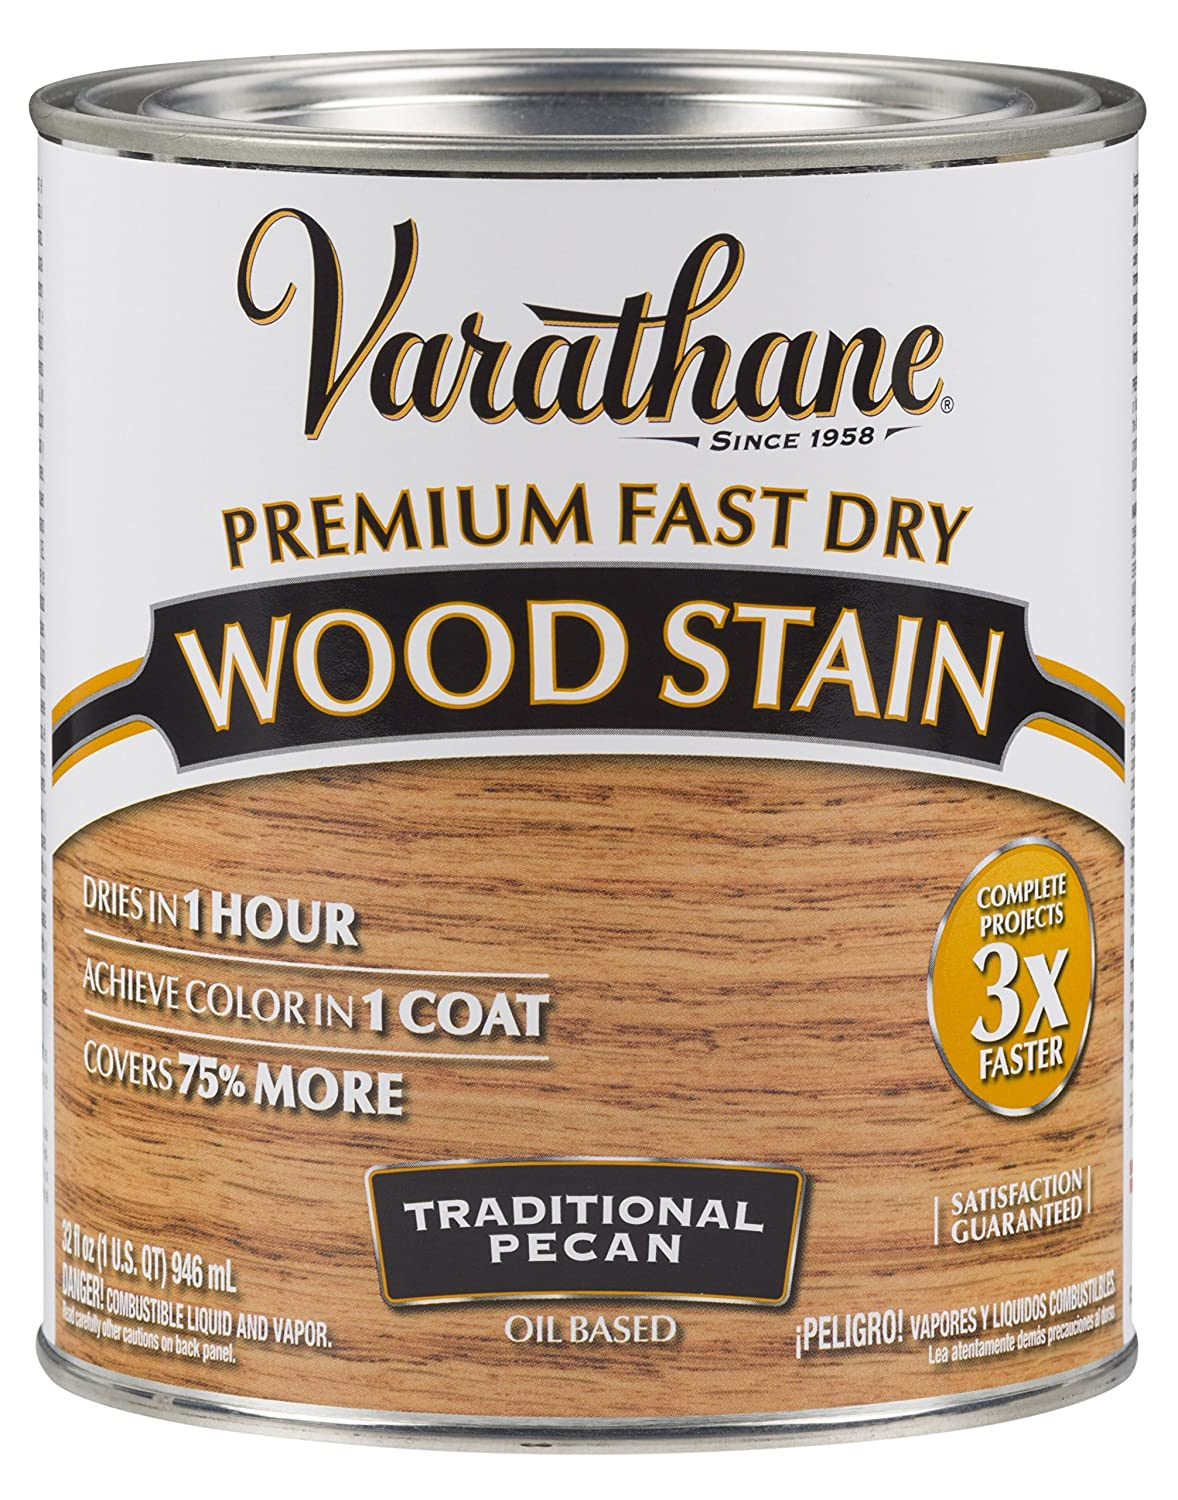 Varathane 262013 Premium Fast Dry Wood Stain, 32 oz, Traditional Pecan